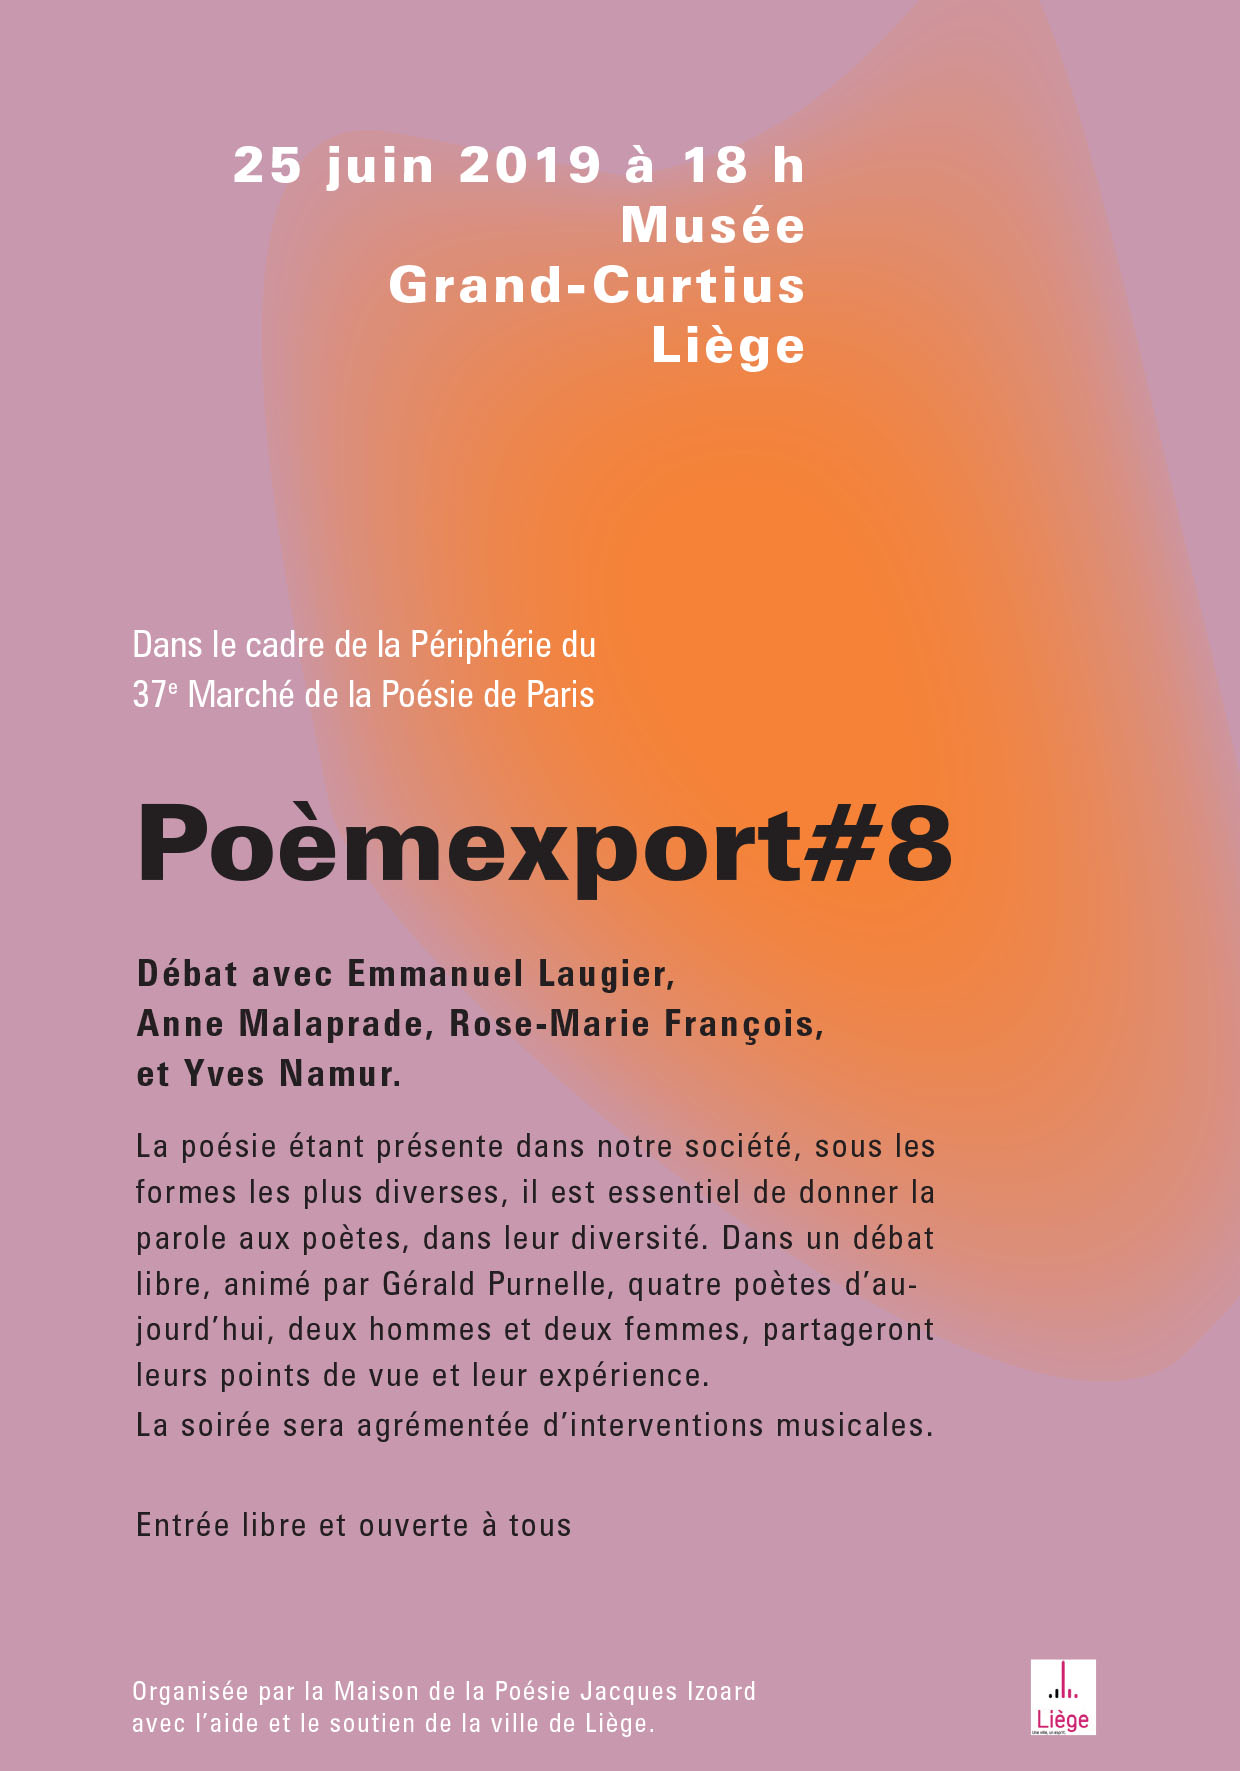 Poèmexport Grand Curtius 2019 Izoard Grand Curtius